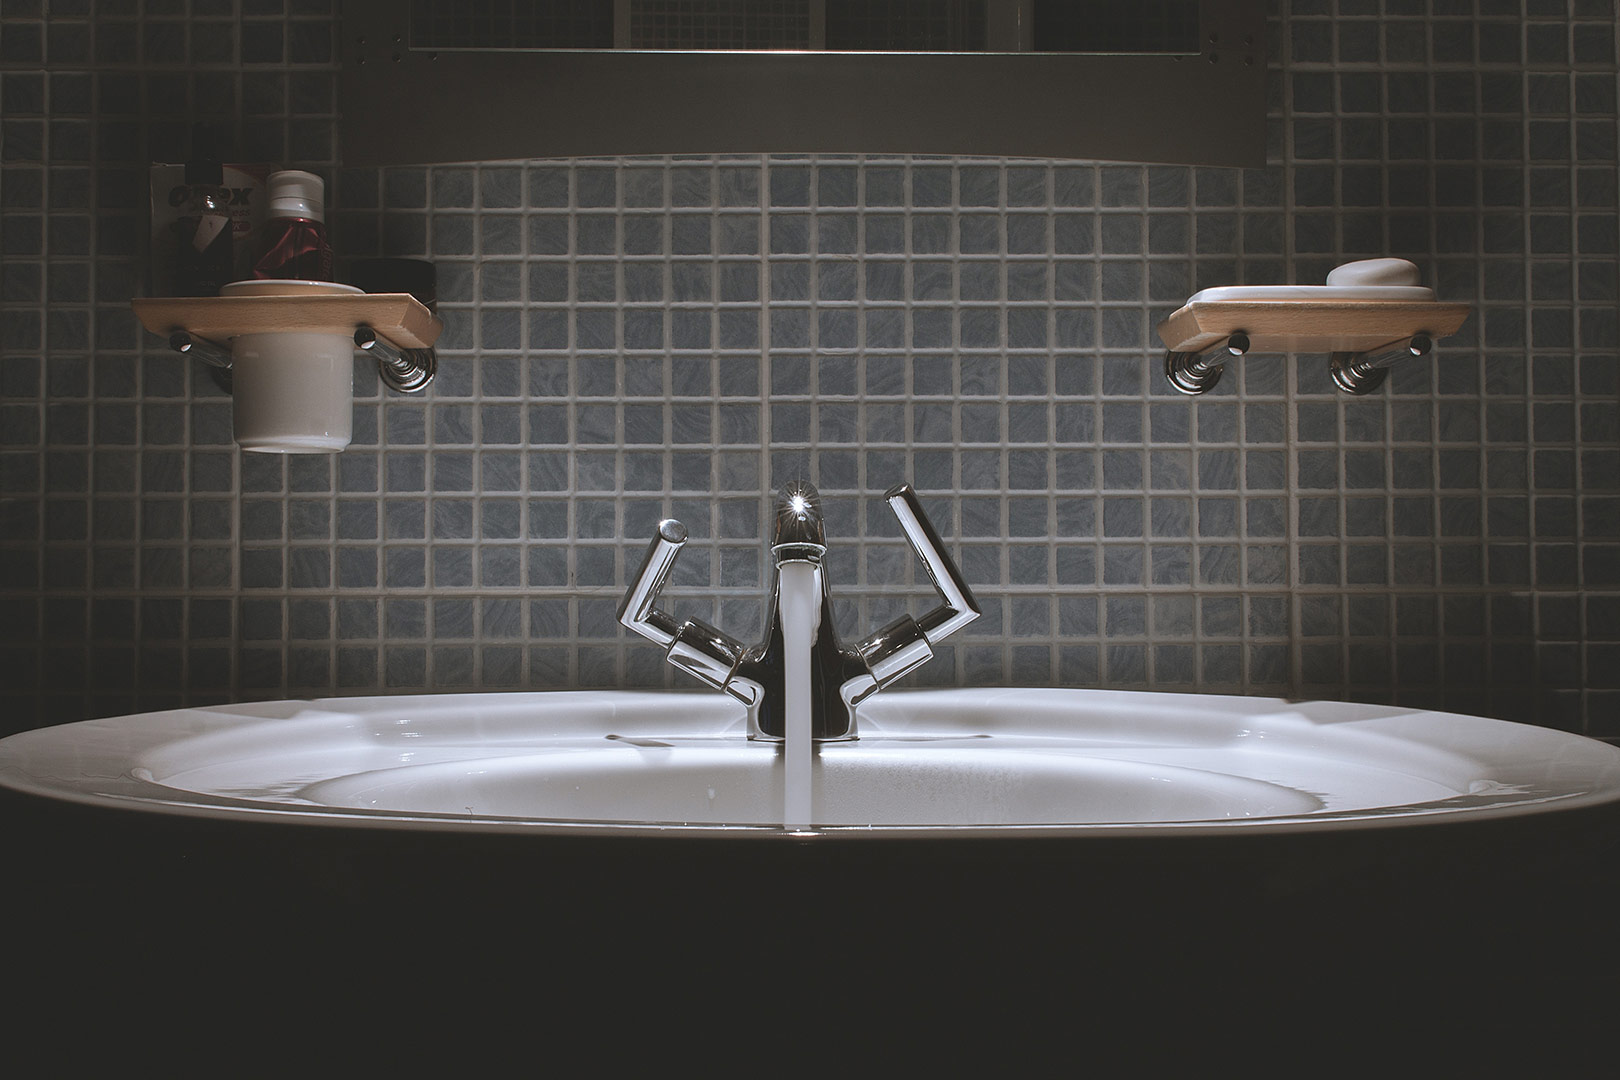 hartleys-blog-clever-ideas-for-small-bathrooms-blog-picture-of-a-bathroom-basin-and-some-shelving